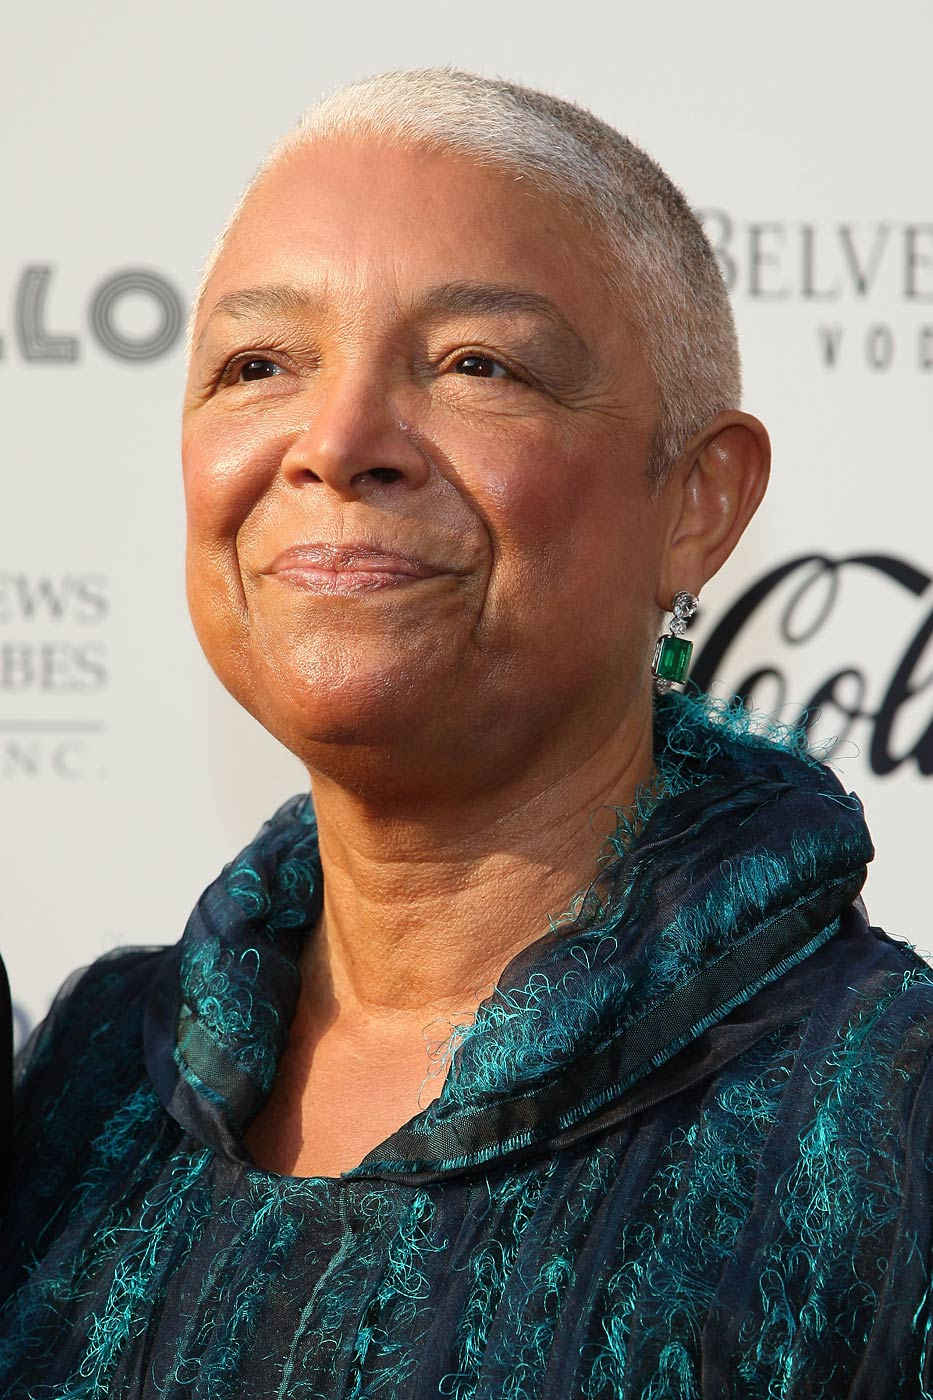 Camille Cosby attends the Apollo Theater 75th Anniversary Gala at The Apollo Theater on June 8, 2009 in New York City.